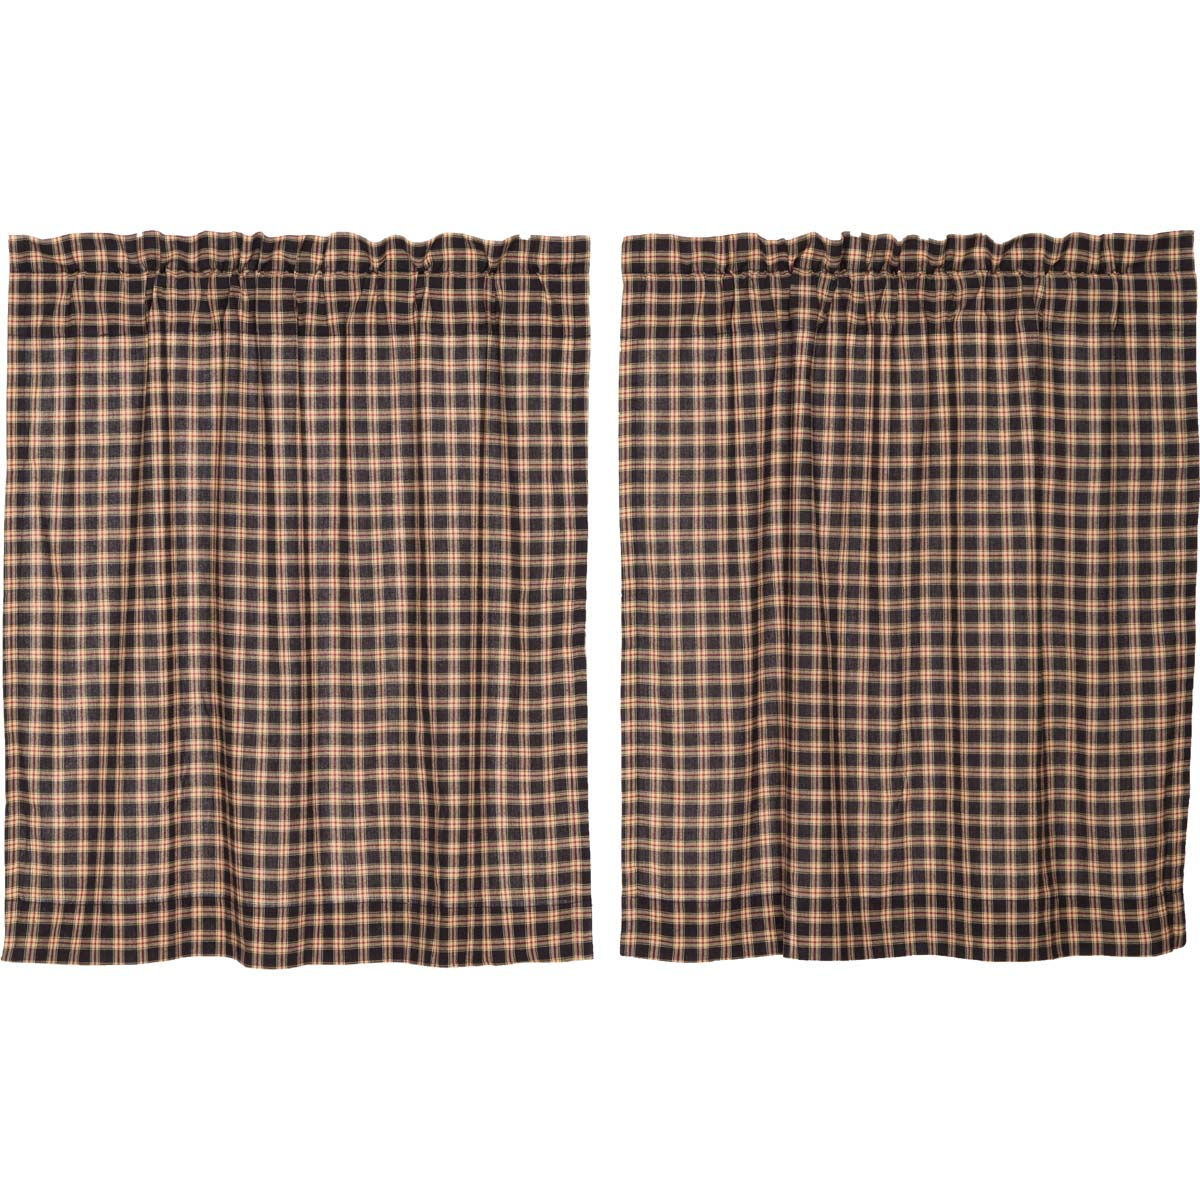 Bingham Star Tier Plaid Set of 2 L36xW36 - Woodrol